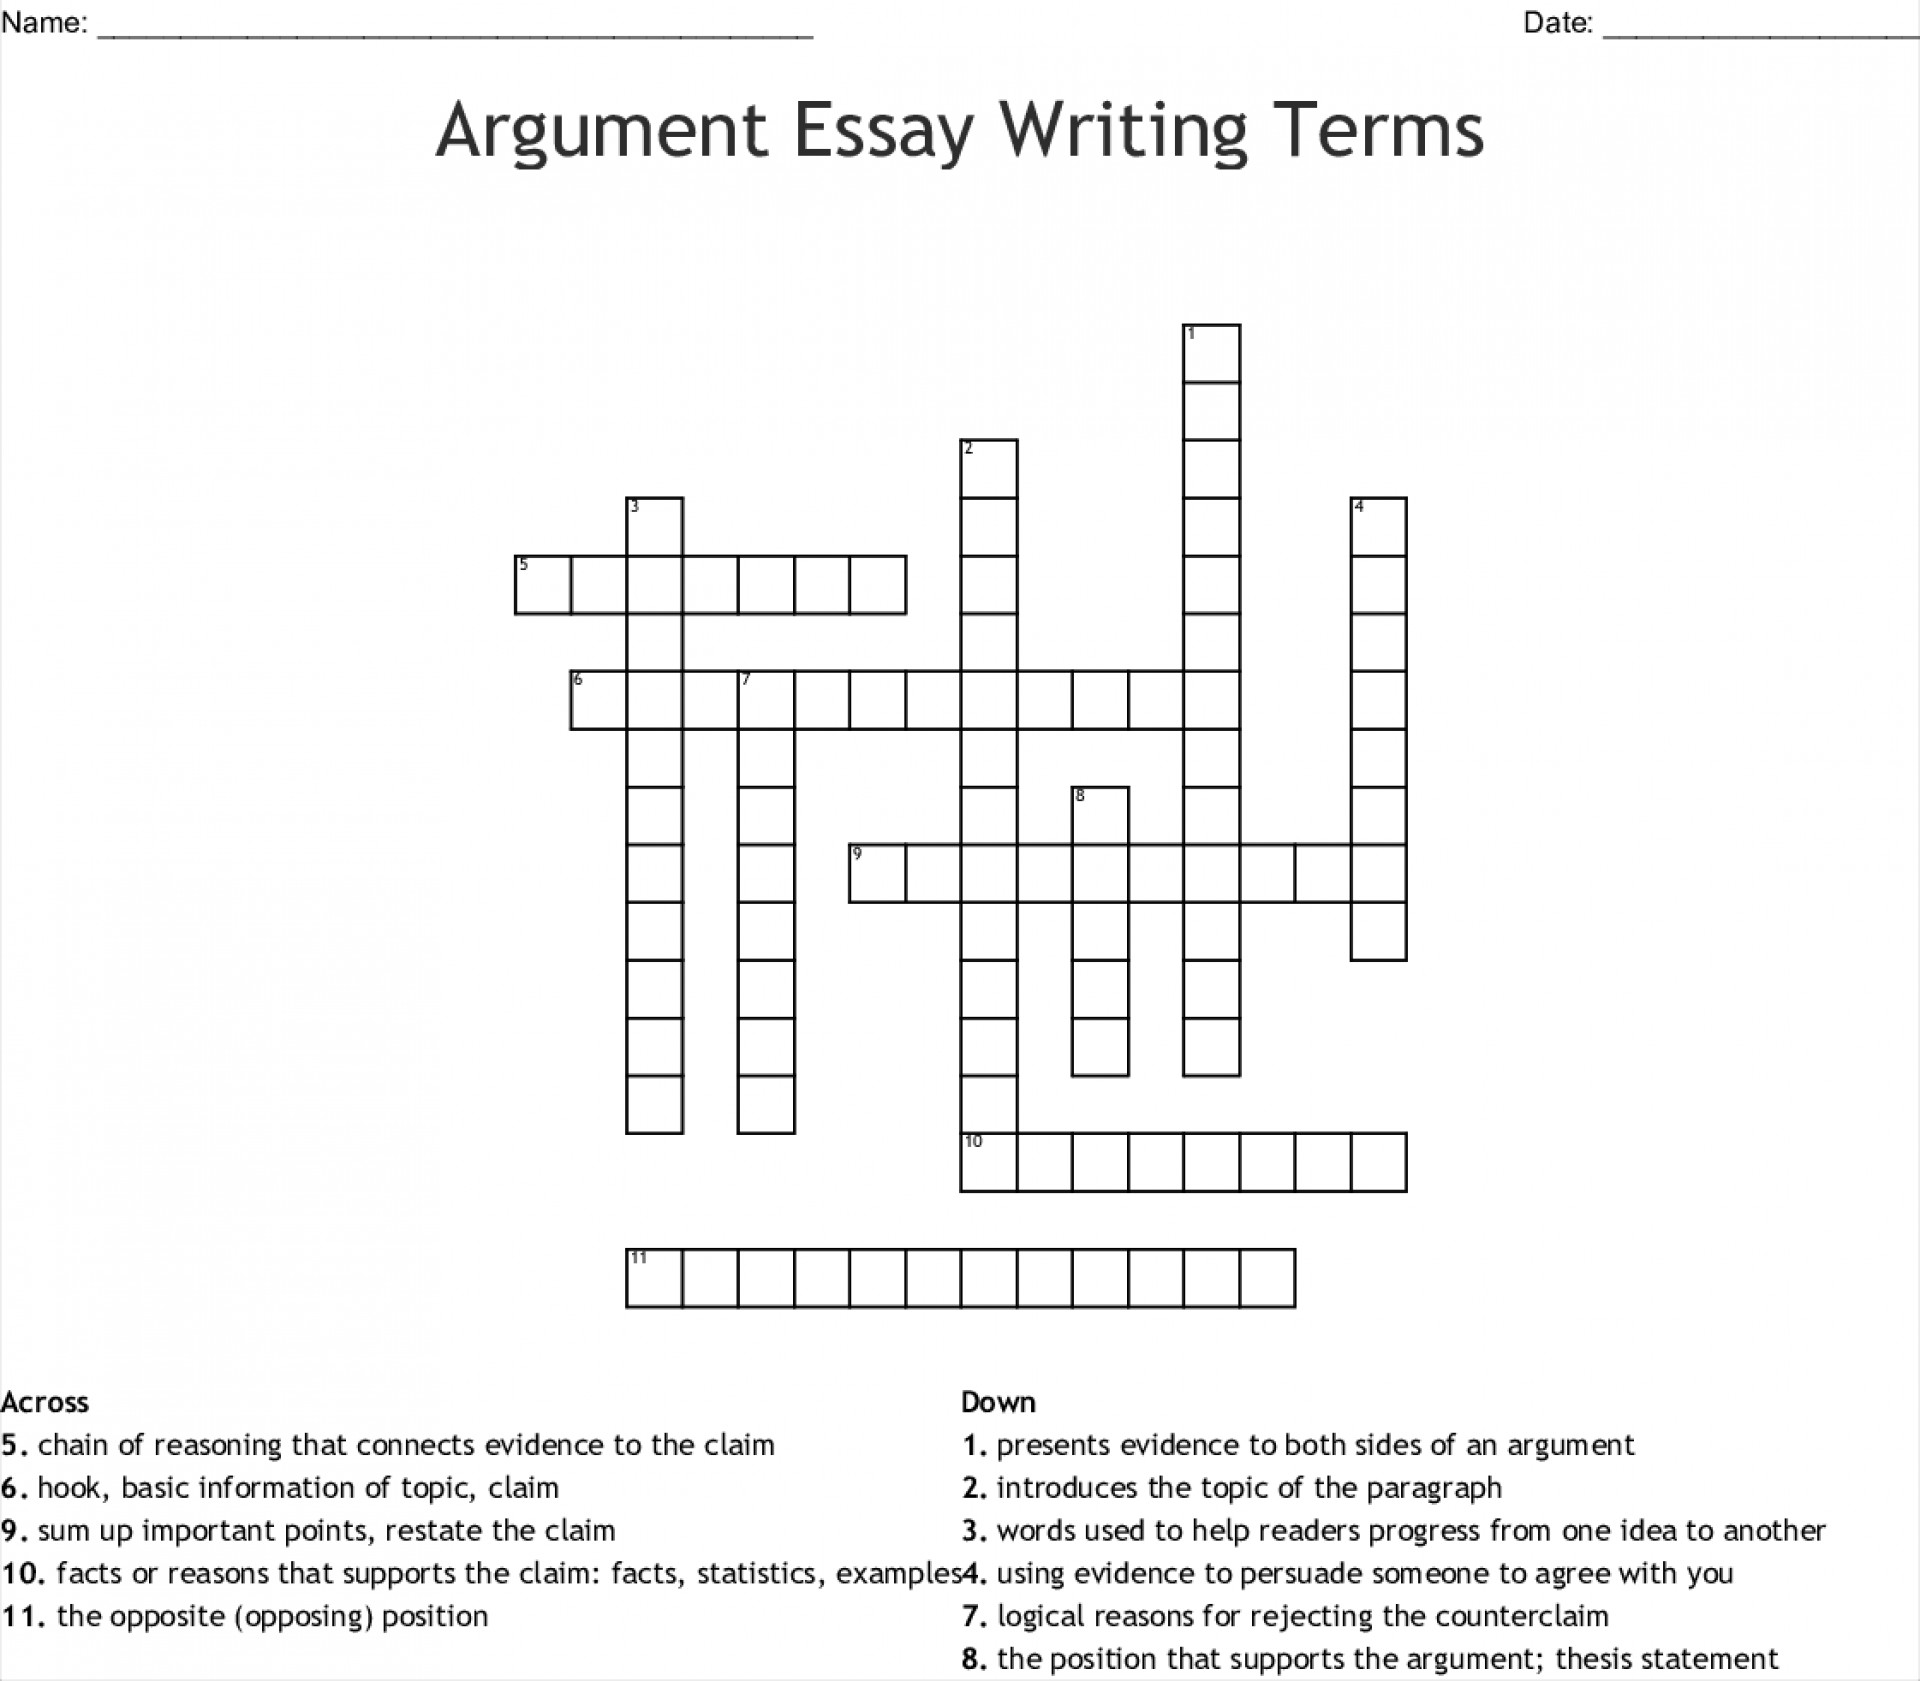 008 Essay Example Argument Writing Terms 255652 Fascinating Crossword Byline Clue Short Puzzle Persuasive 1920